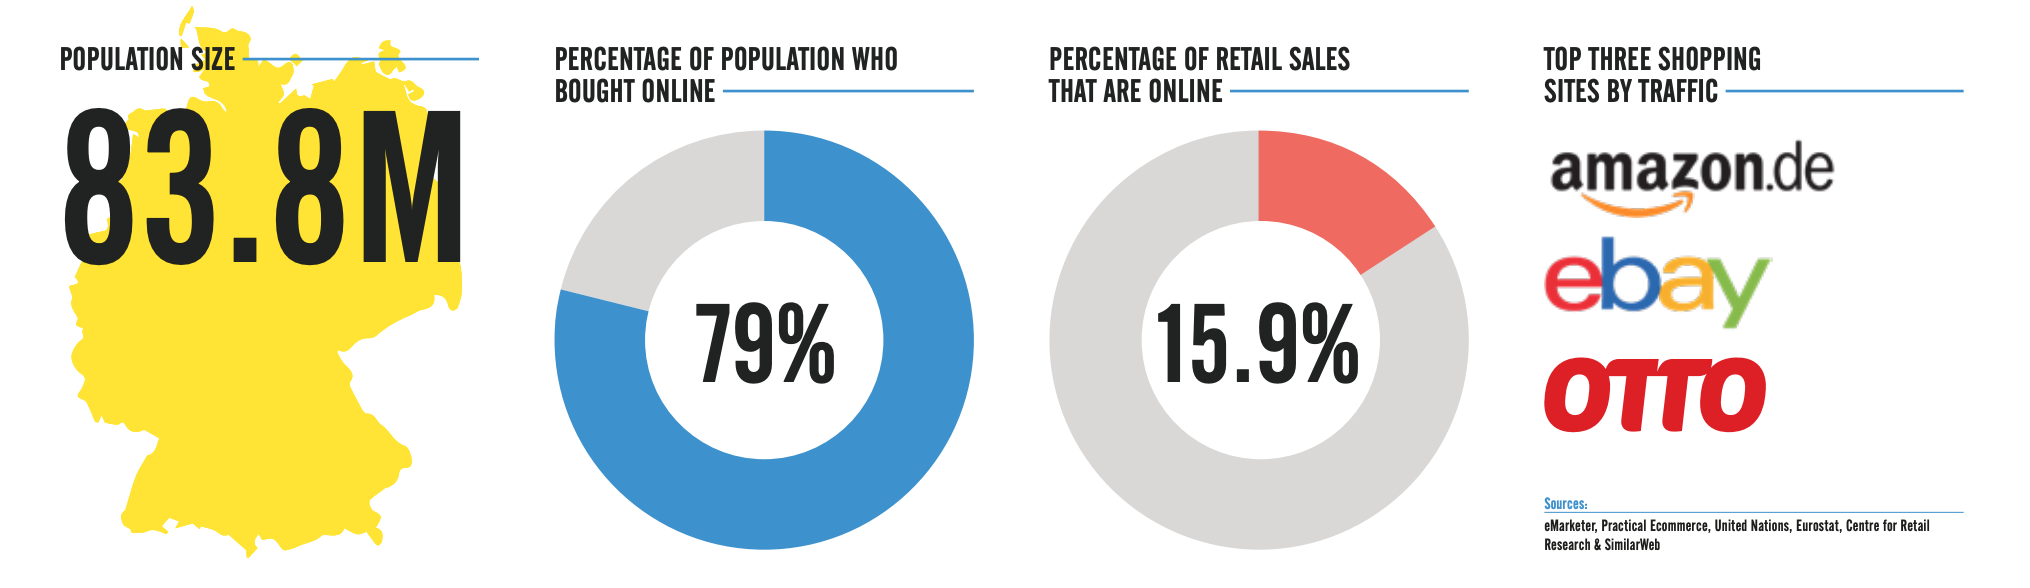 Ecommerce in Germany Profile | Pattern EU Report